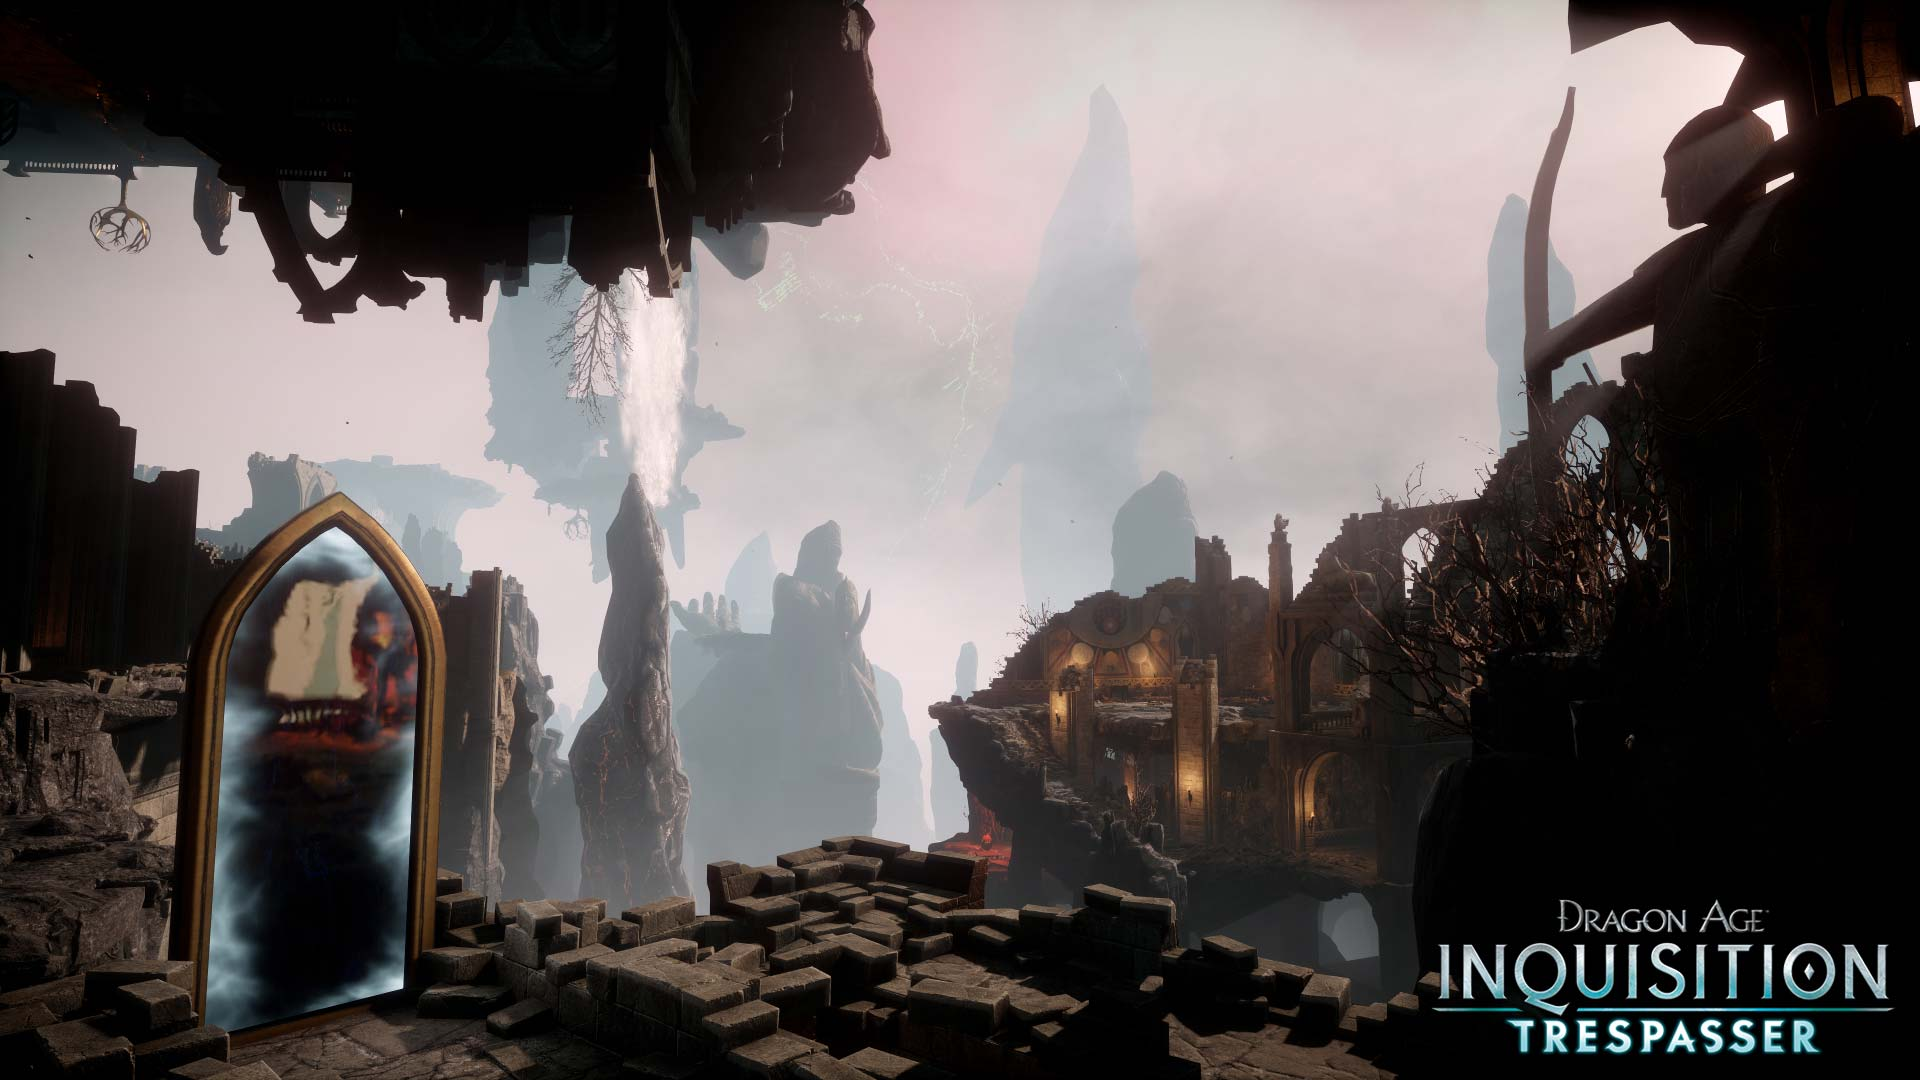 Dragon Age Inquisition Trespasser Screenshots